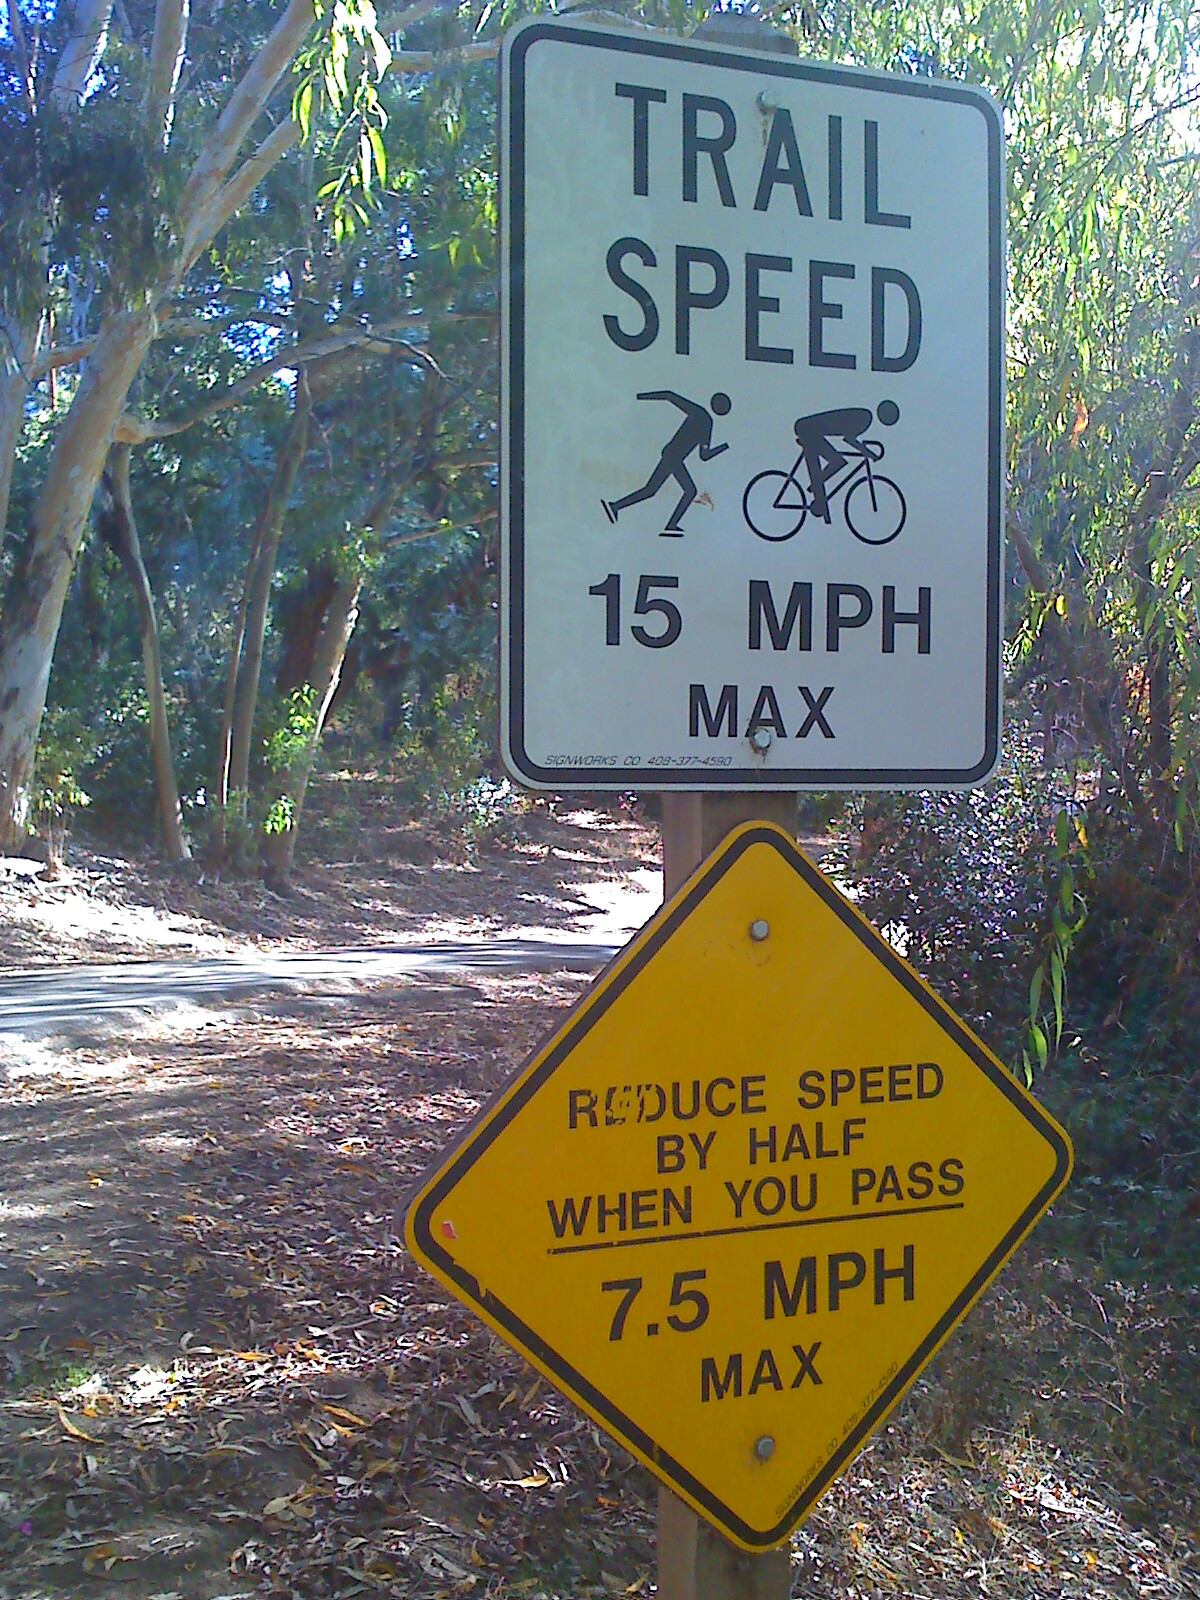 Trail speed